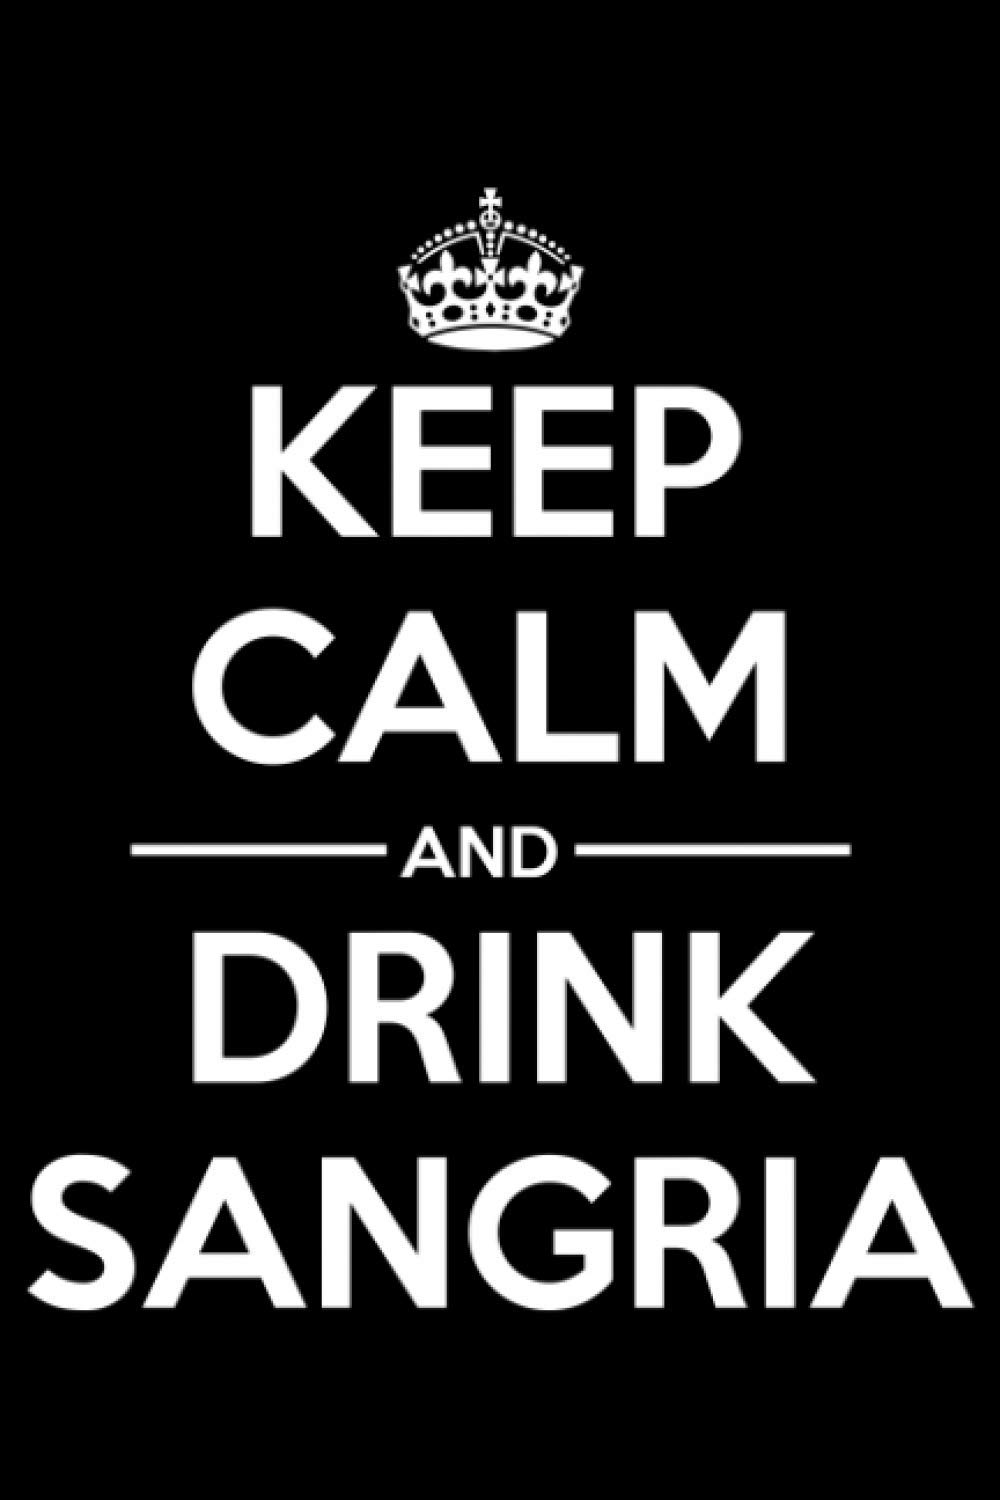 Keep Calm and Drink Sangria.: Funny Liquor Notebook to write in | 6 X 9 inches | Notebook 120- page lined | Great liquor notebook gift for liquor drinkers.